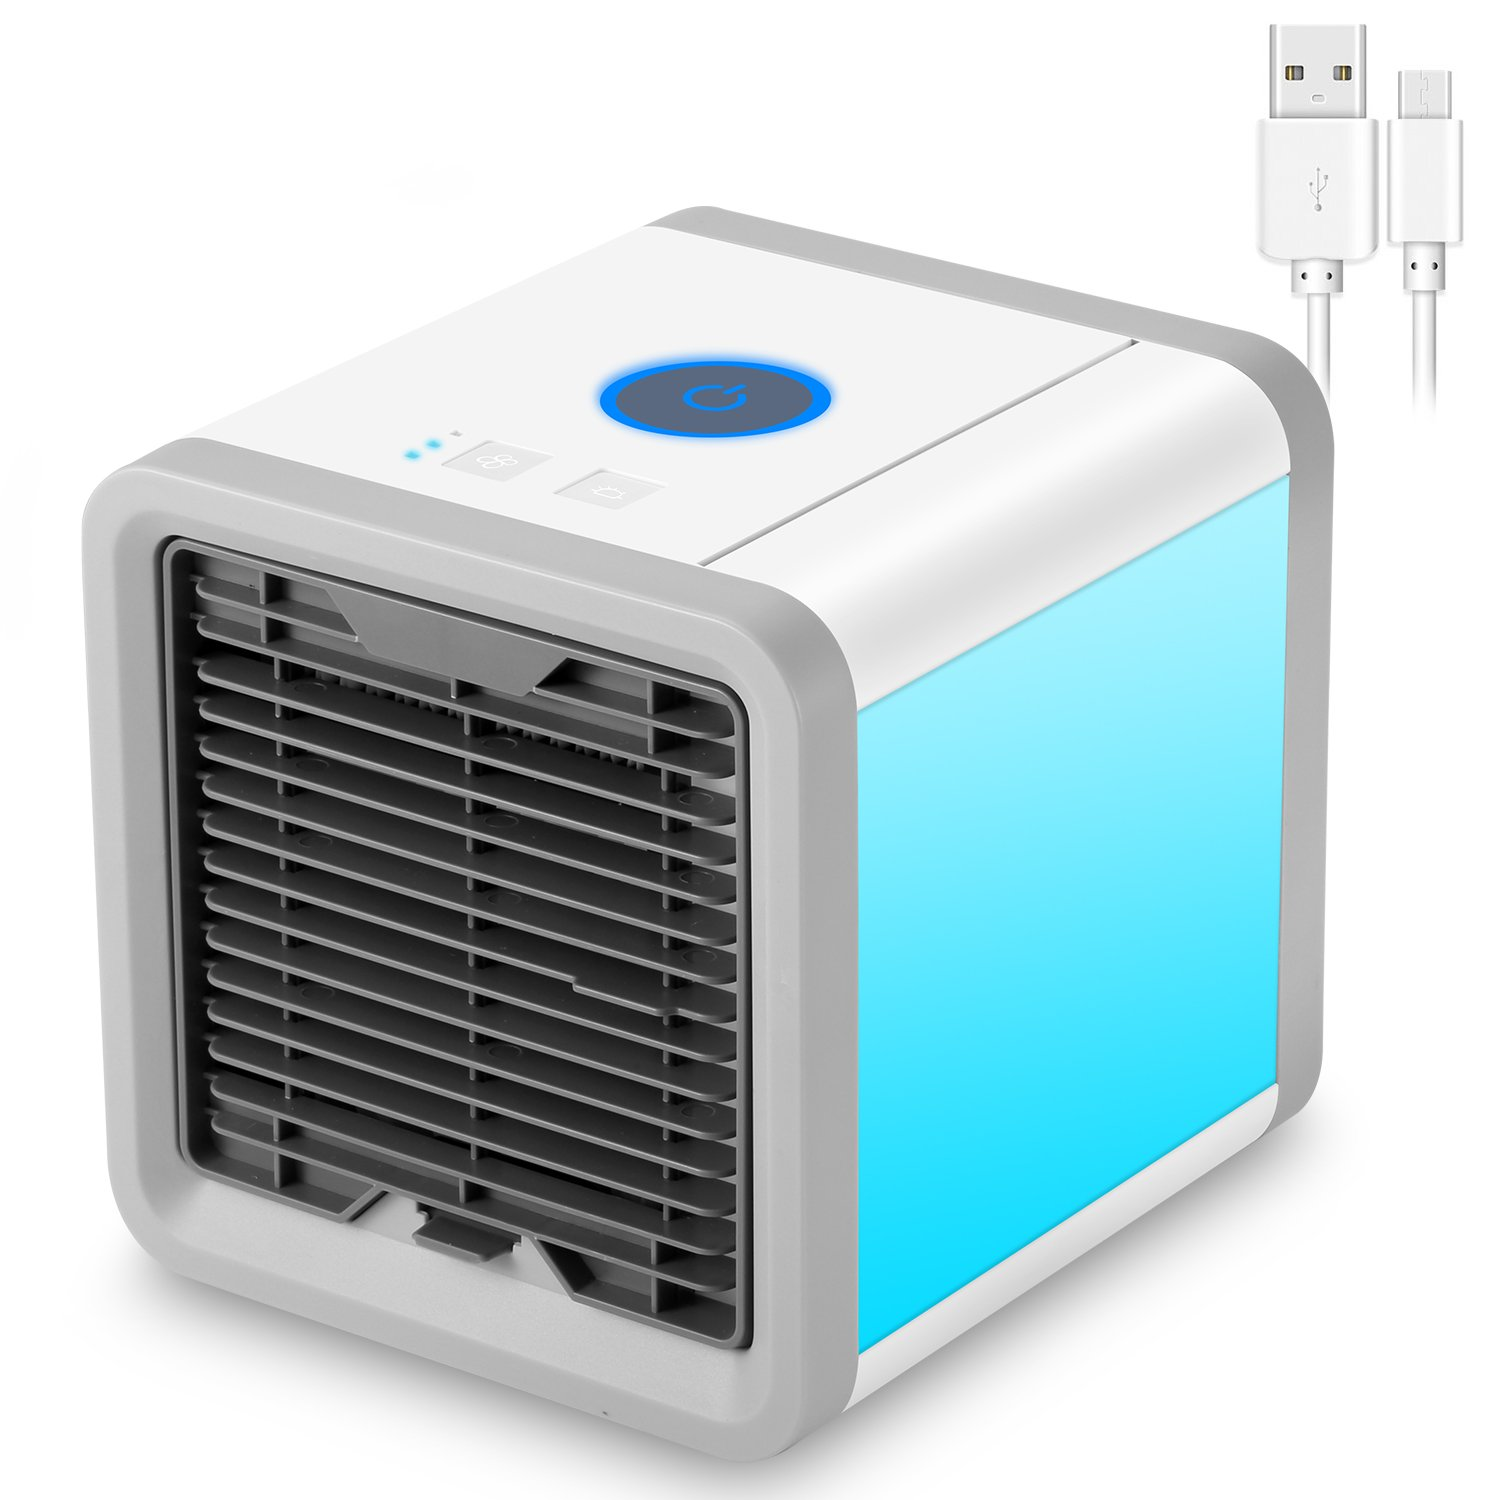 NEXGADGET Portable Air Cooler, 3 in 1 USB Mini personal Air Conditioner, Humidifier, Purifier,Desktop Cooling Fan with 7 Colors LED Night Light for Office, Home, Outdoor Travel